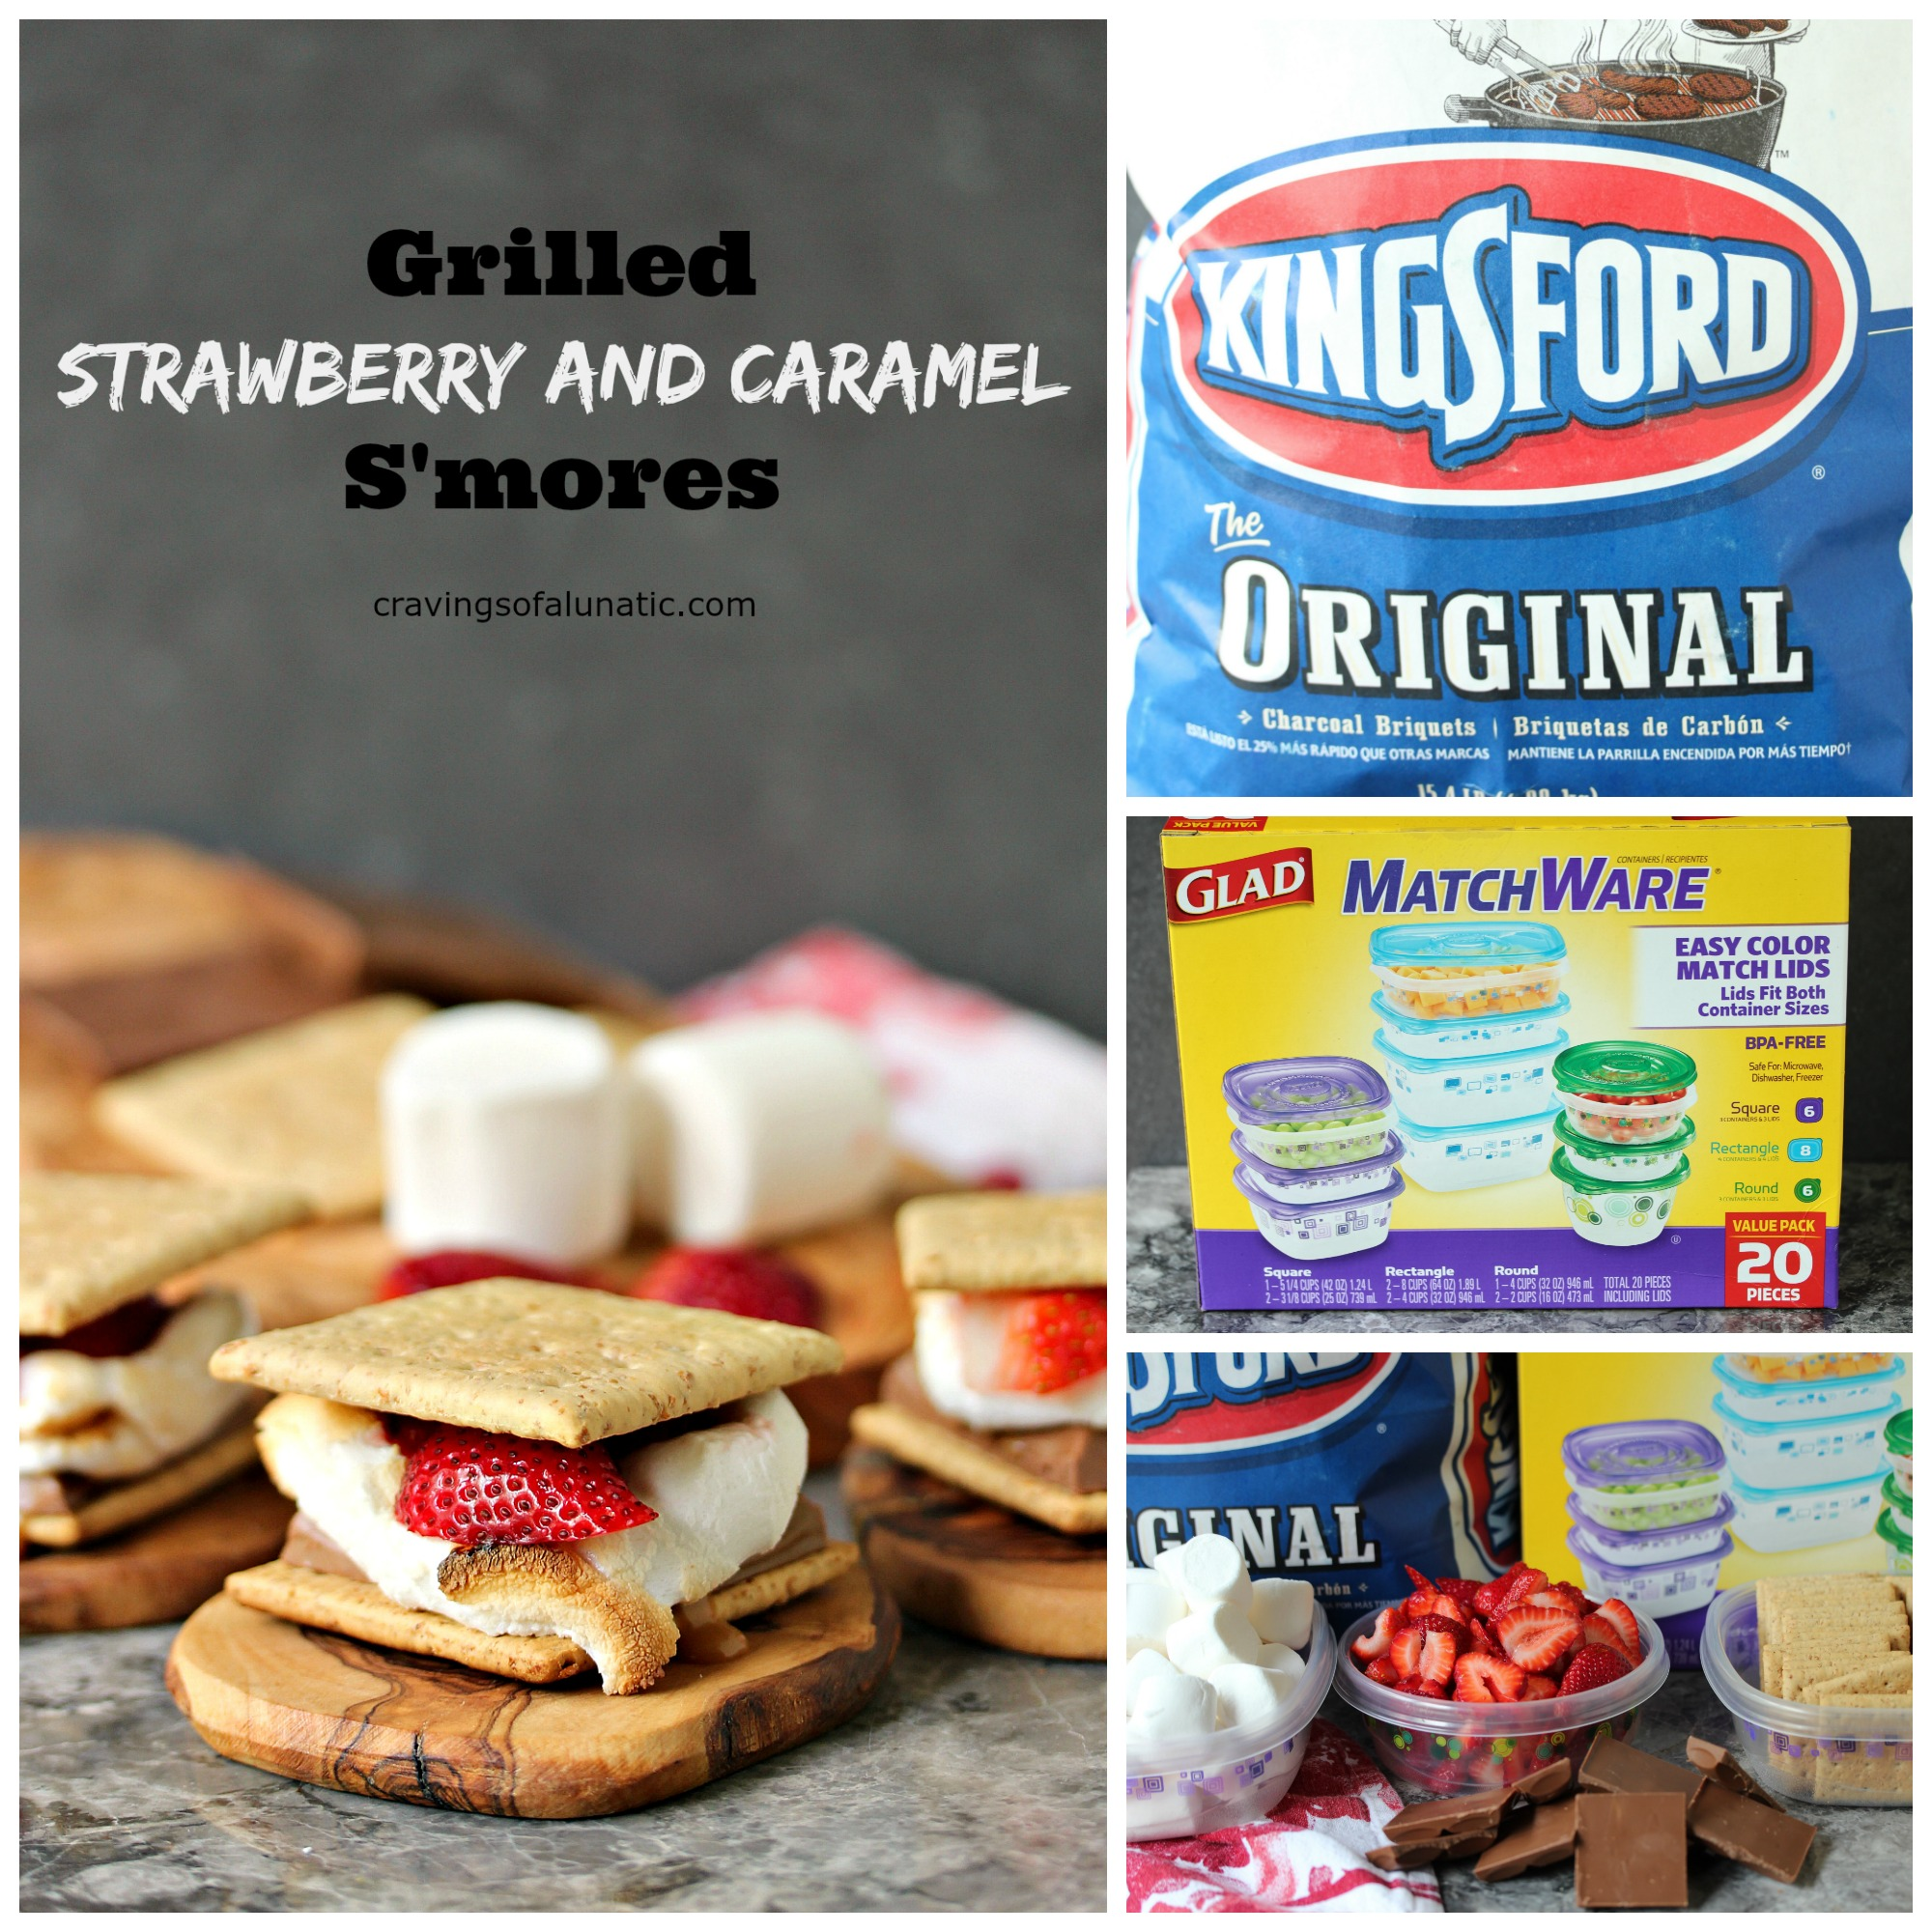 Grilled Strawberry and Caramel S'mores from cravingsofalunatic.com- Classic S'mores with a twist. These Grilled Strawberry and Caramel S'mores are made with graham crackers, chocolate bars filled with caramel, marshmallows, and fresh strawberries. (@CravingsLunatic)